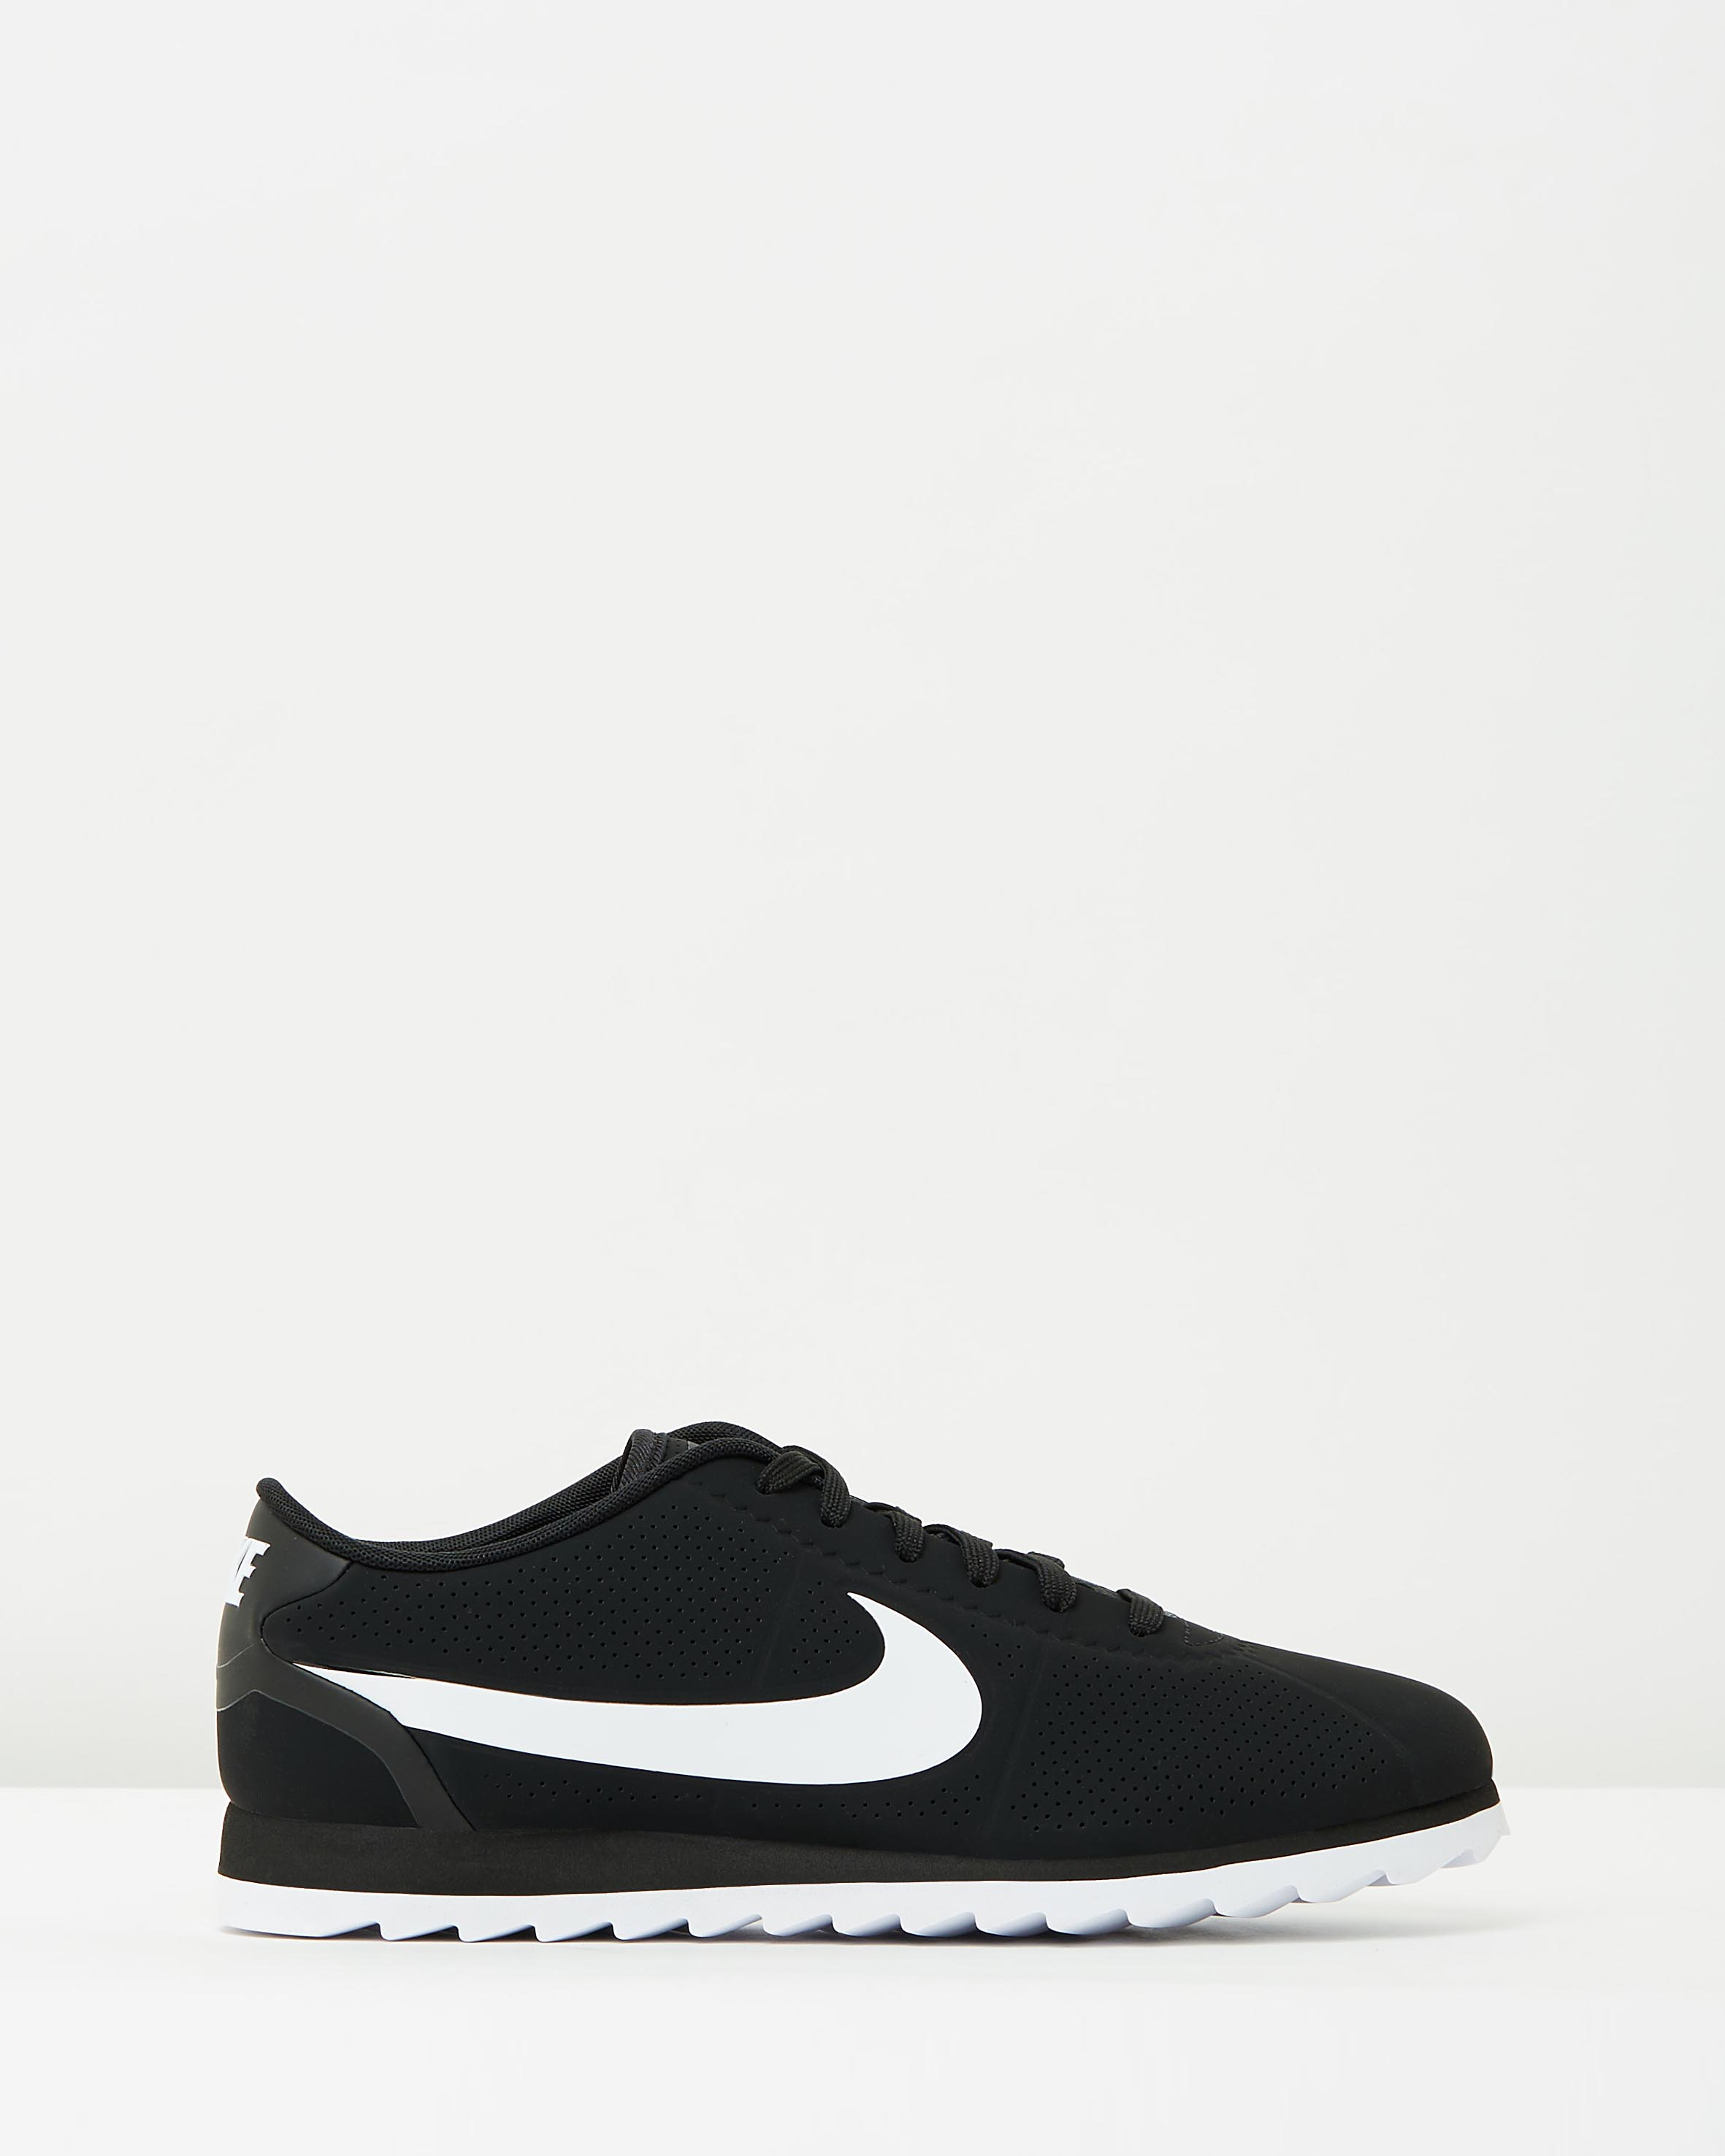 sports shoes c2a56 158af Womens Nike Cortez Ultra Moire Black White 1 ...